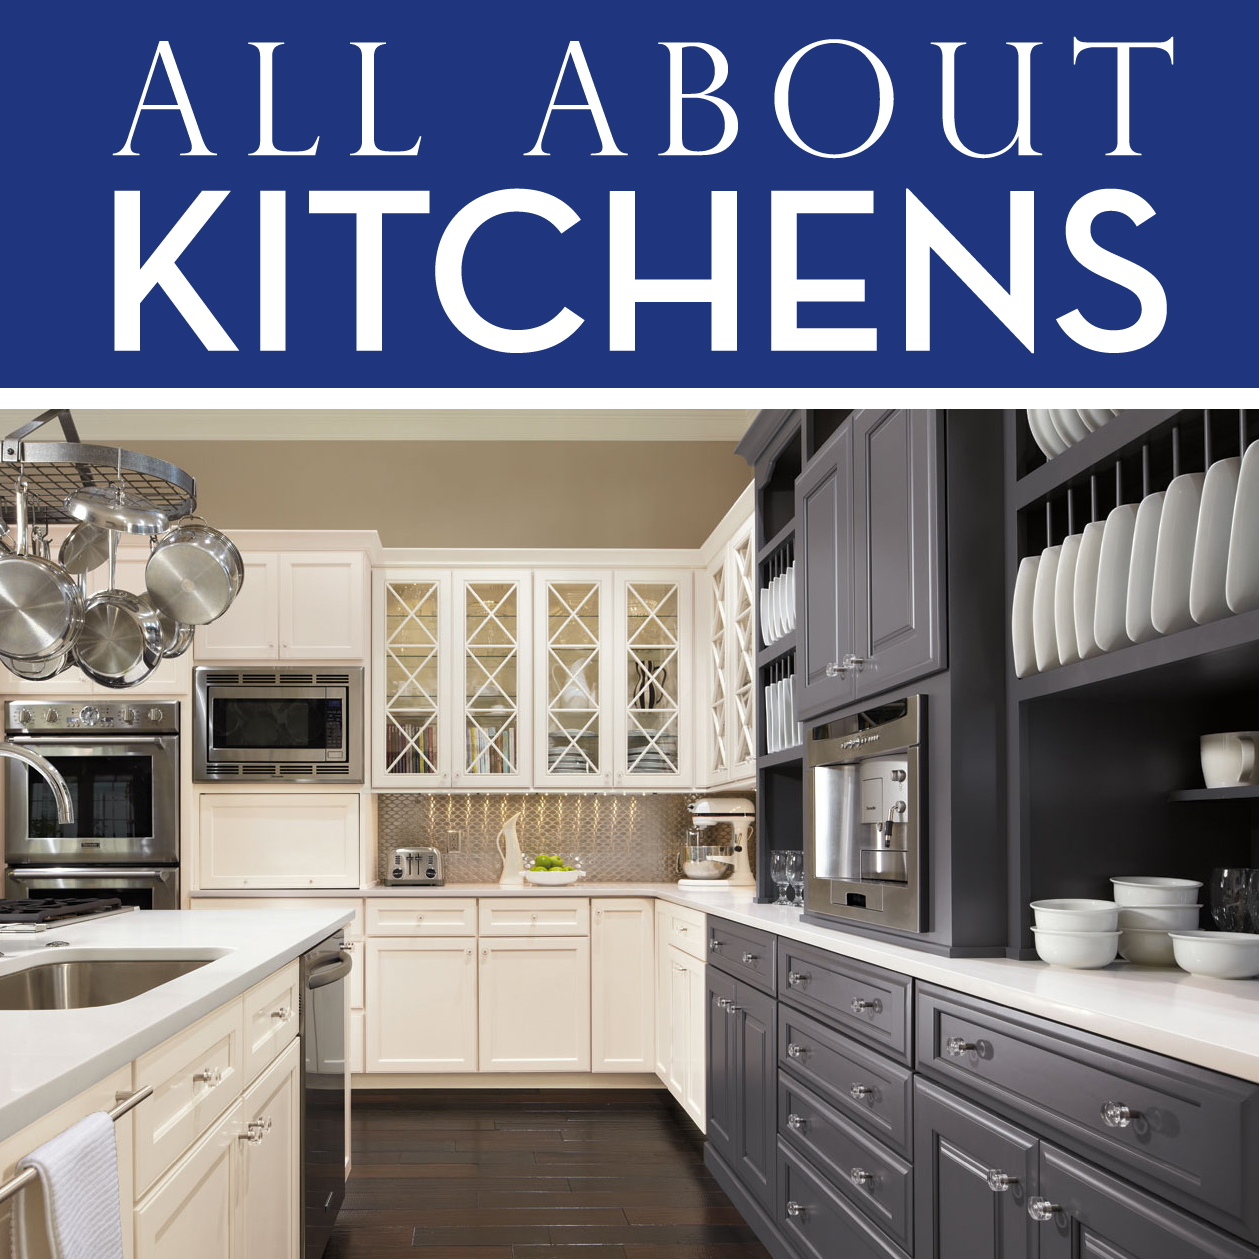 All About Kitchens Concord Nh Wolfeboro Nh And Kennebunk Me